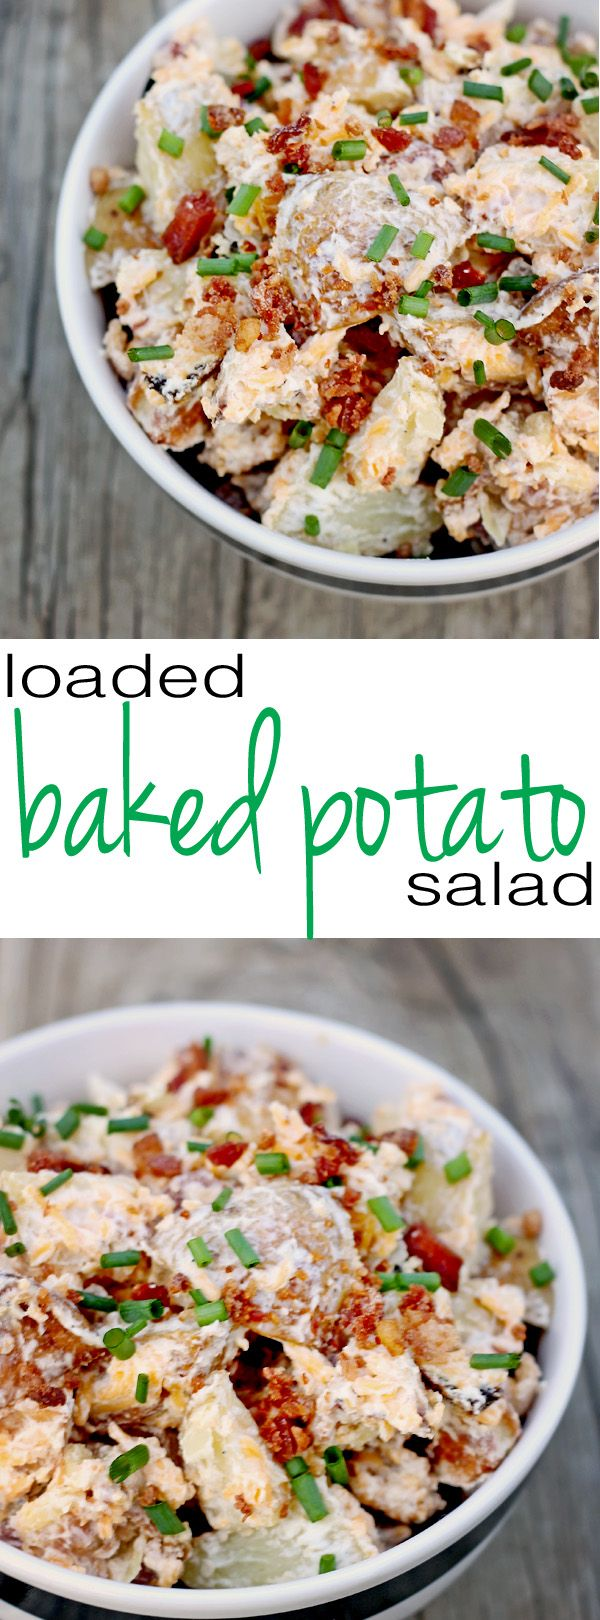 Loaded Baked Potato Salad - perfect for potlucks (and so easy to make!)